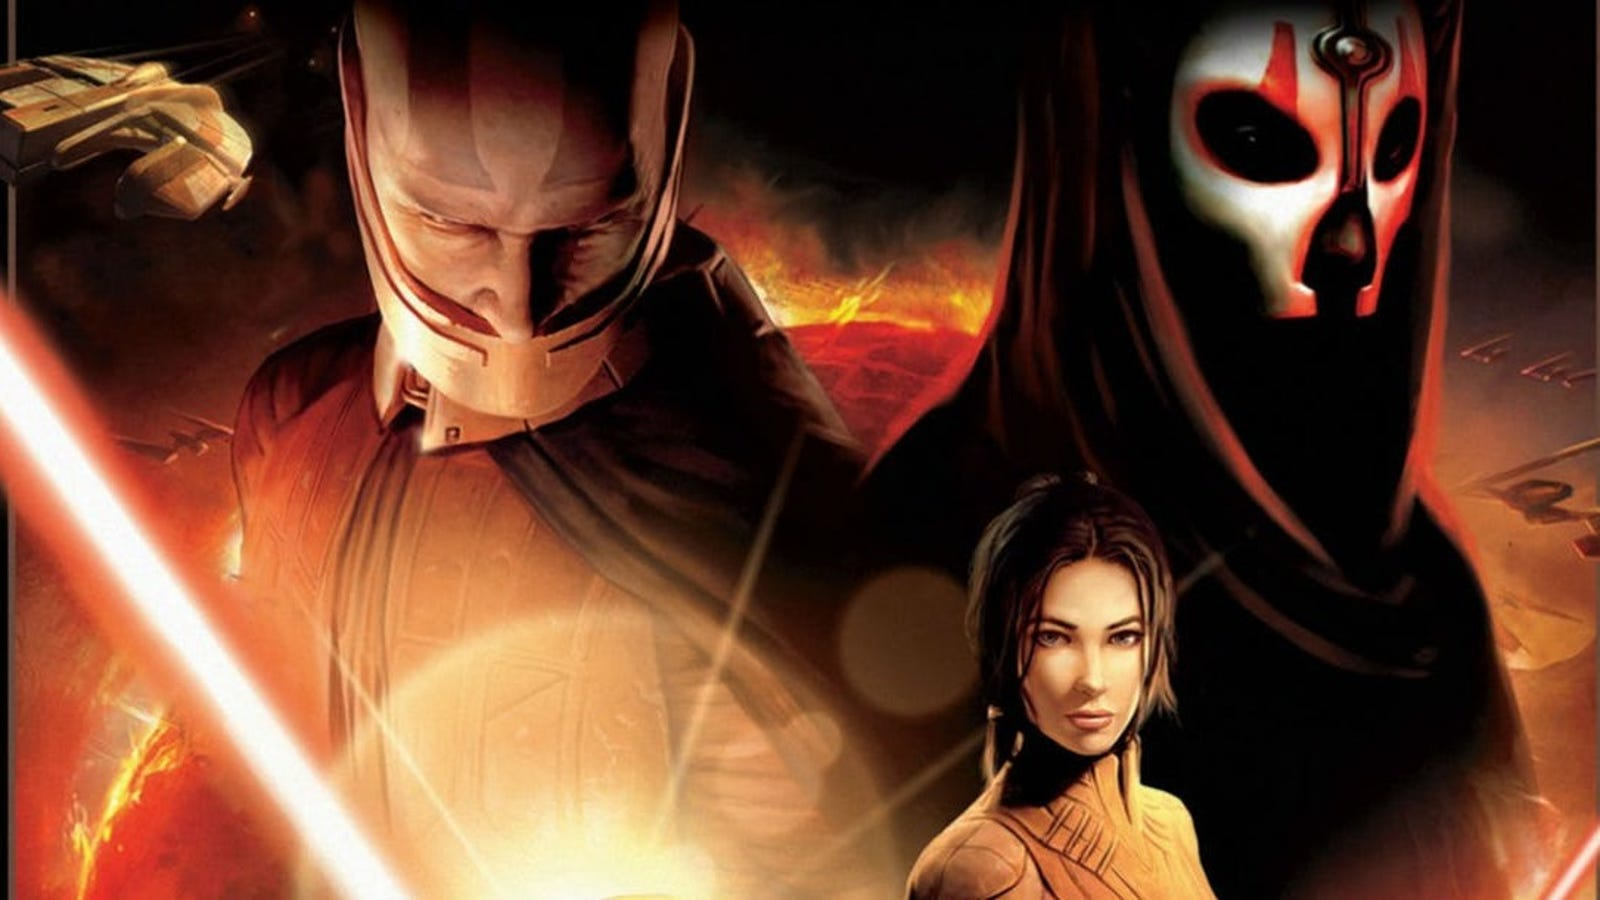 Report: Laeta Kalogridis Is Writing the First Installment in a Star Wars: Knights of the Old Republic Movie Trilogy